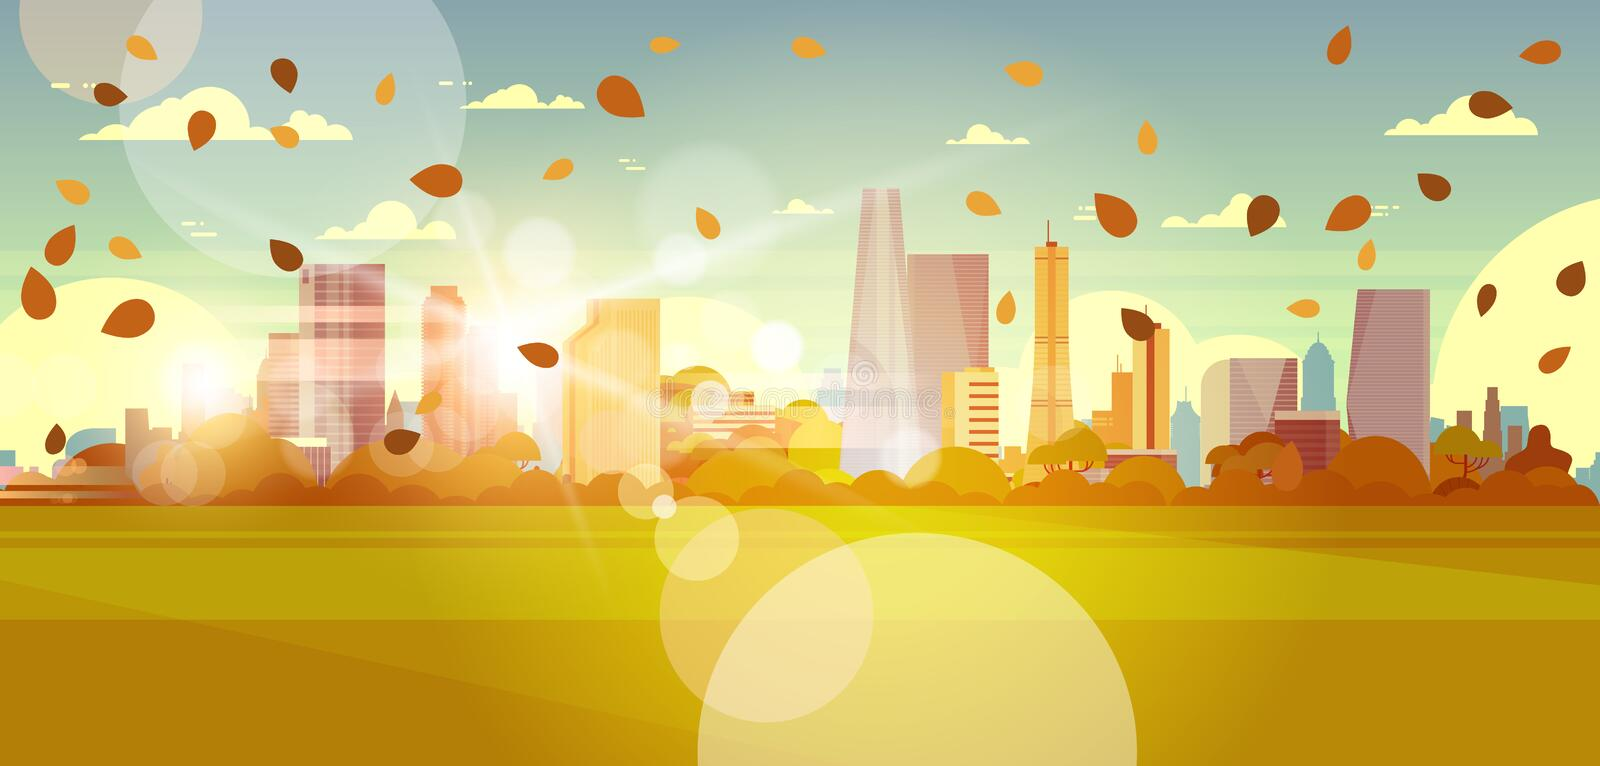 Autumn Cityscape Skyline With Leaves Flying In Sunlight Over Skyscrapers Buildings Urban Landscape Concept royalty free illustration